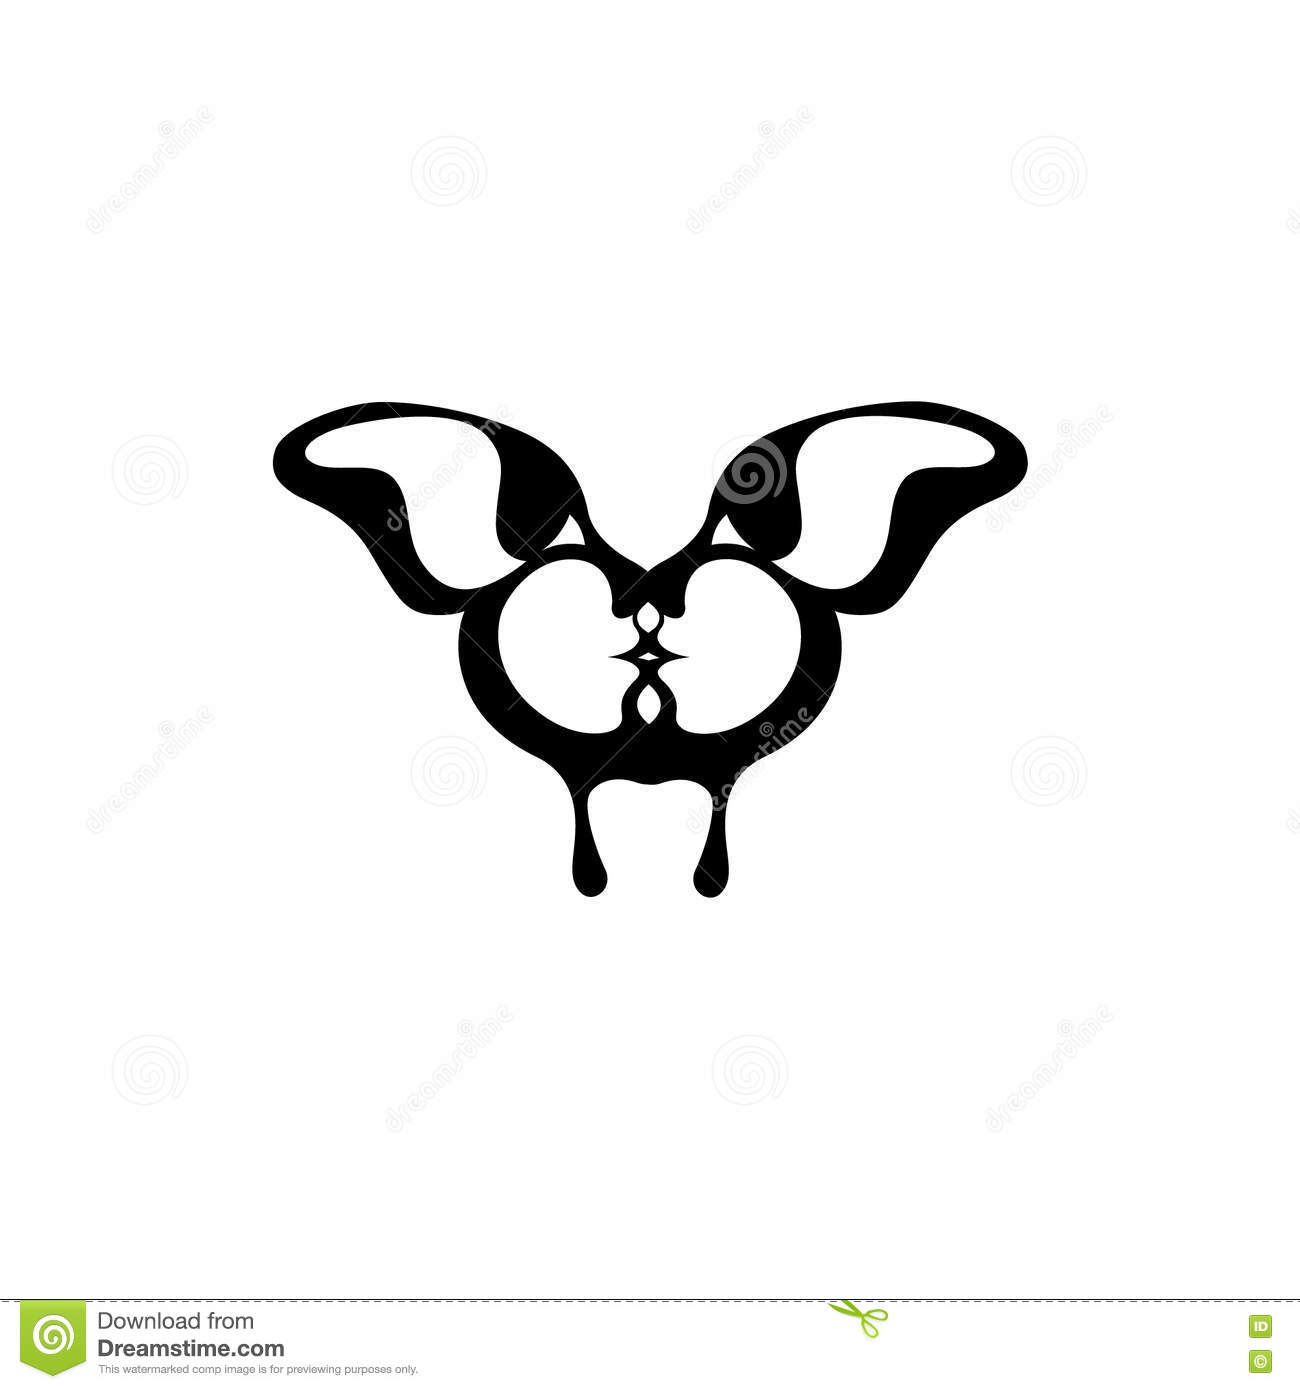 Download Vector Image Of A Butterfly Two Kissing Faces Stock Illustration